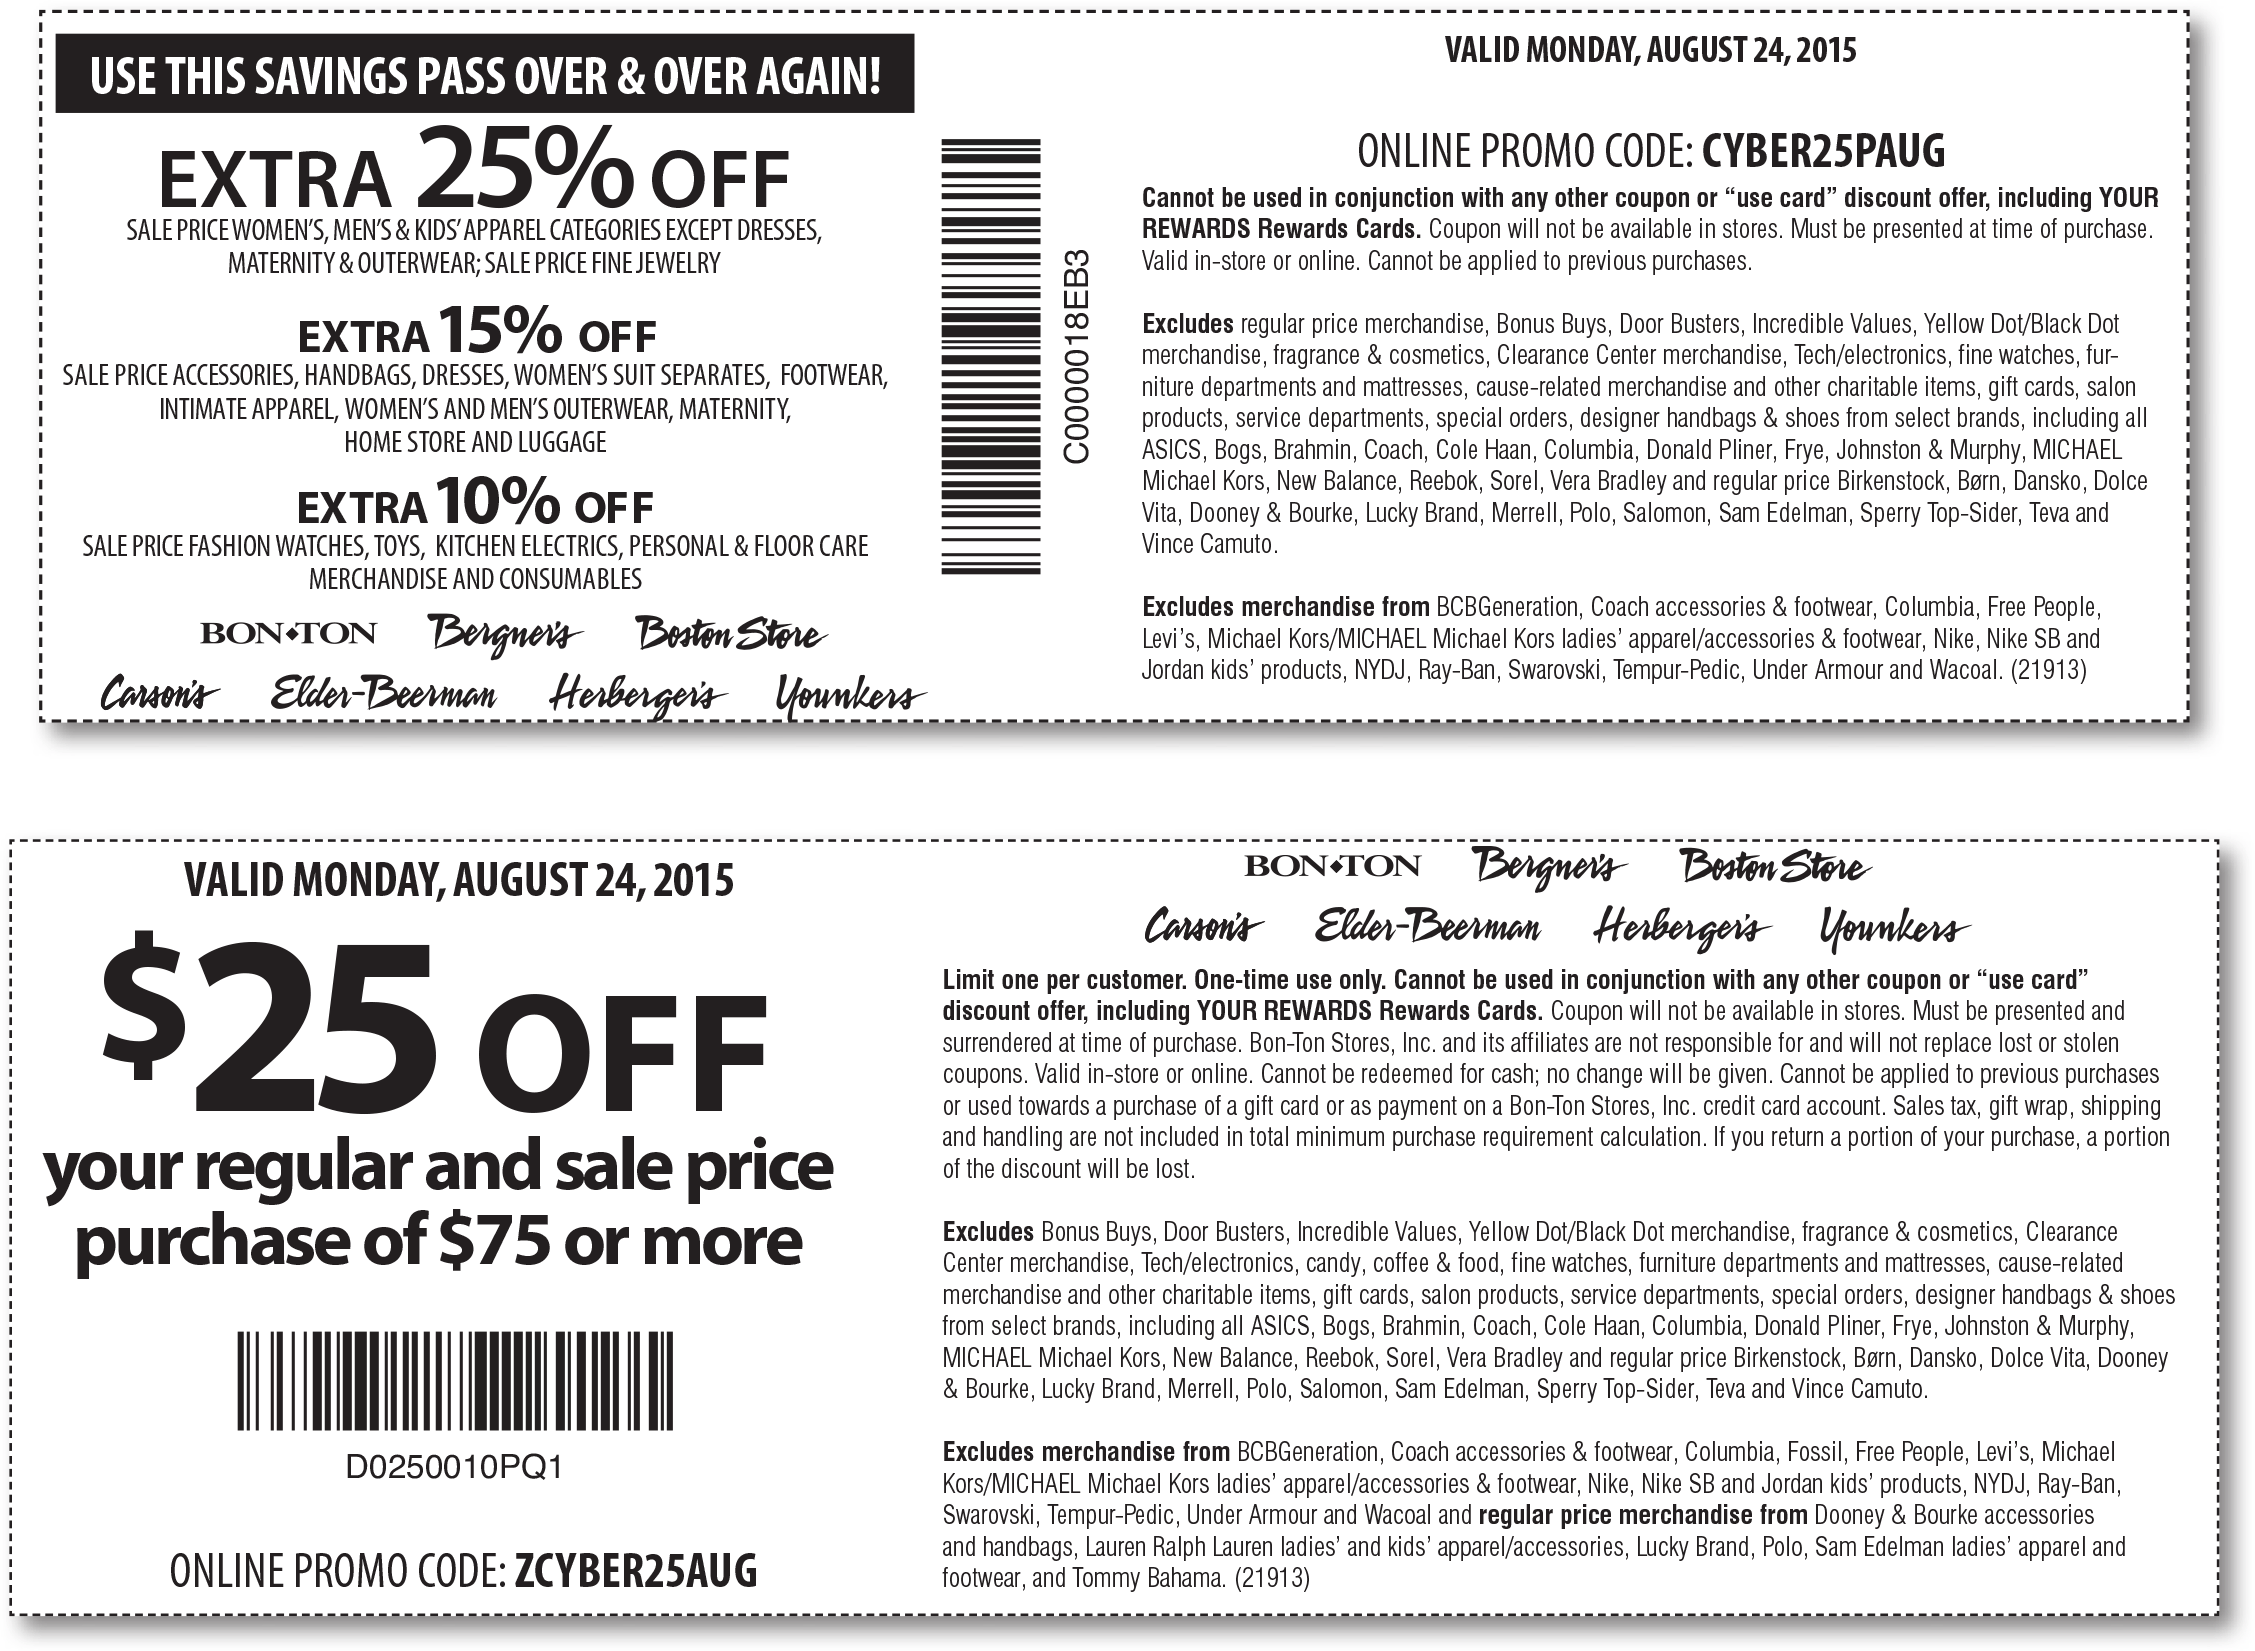 Carsons Coupon December 2016 $25 off $75 & more today at Carsons, Bon Ton & sister stores, or online via promo code ZCYBER25AUG